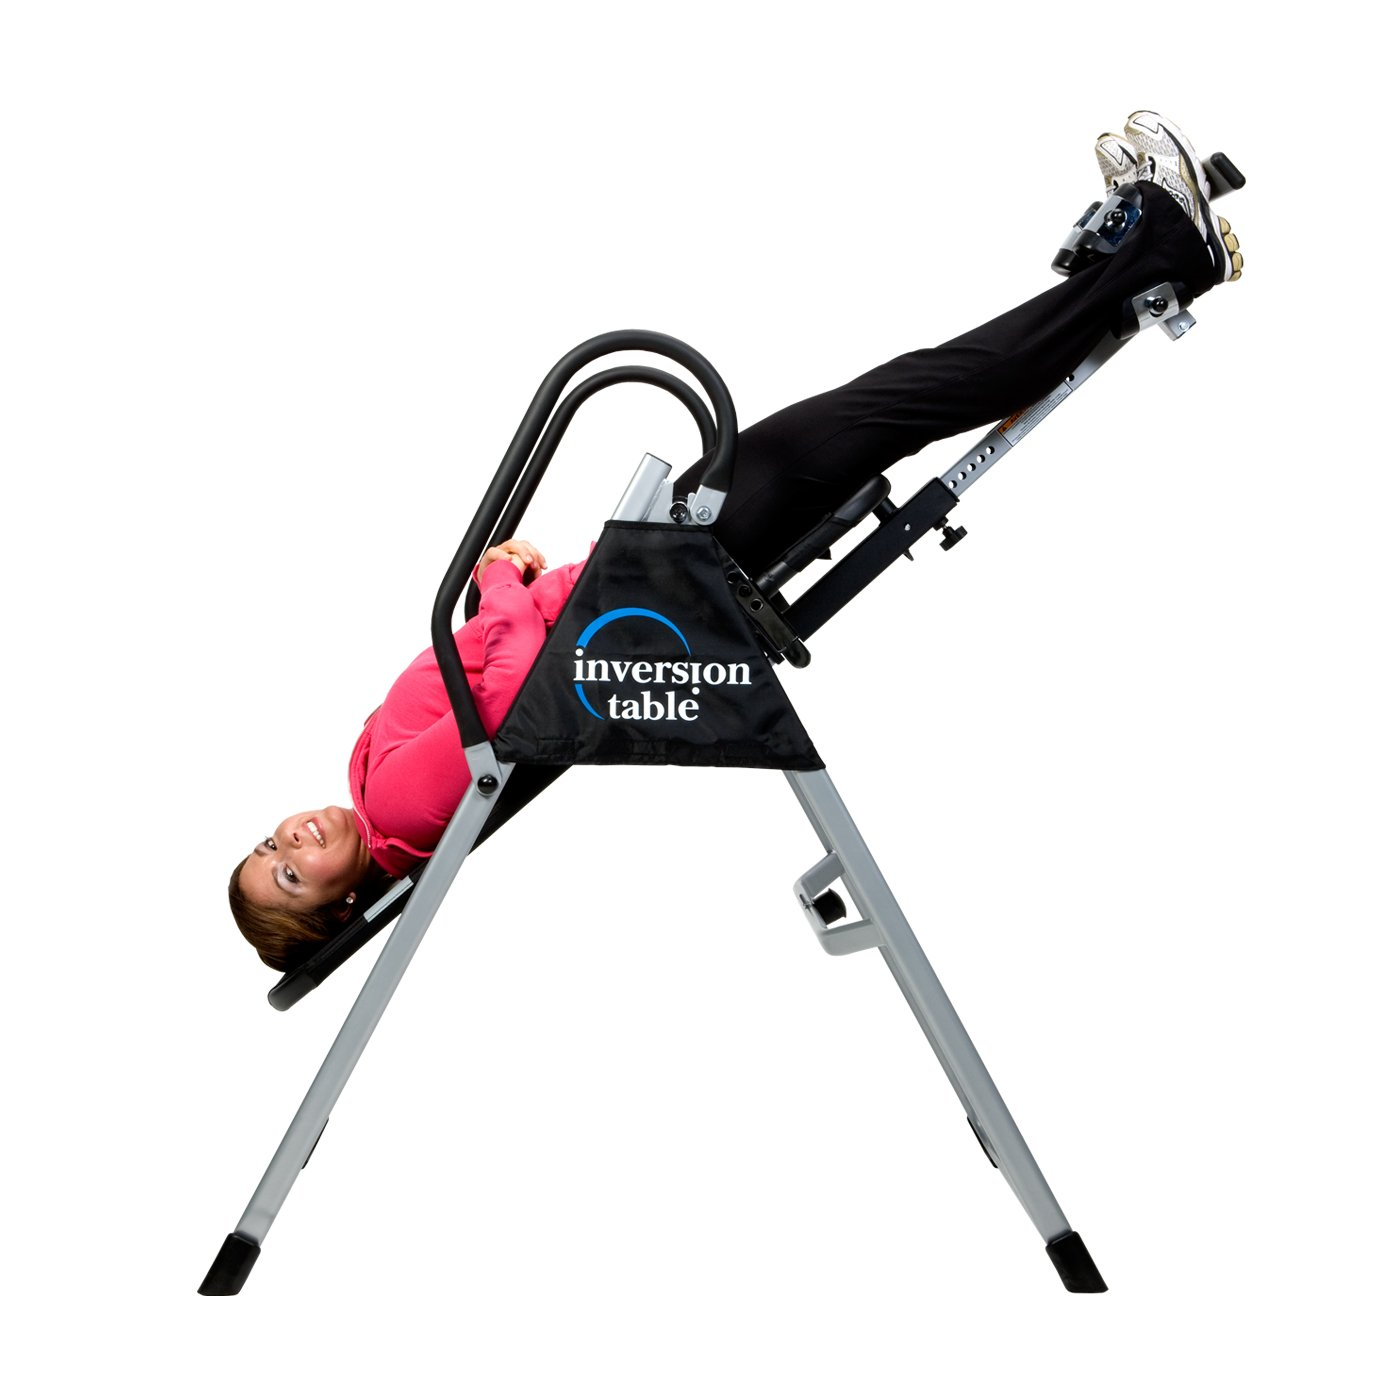 Ironman Gravity 1000 Inversion Table review and discount